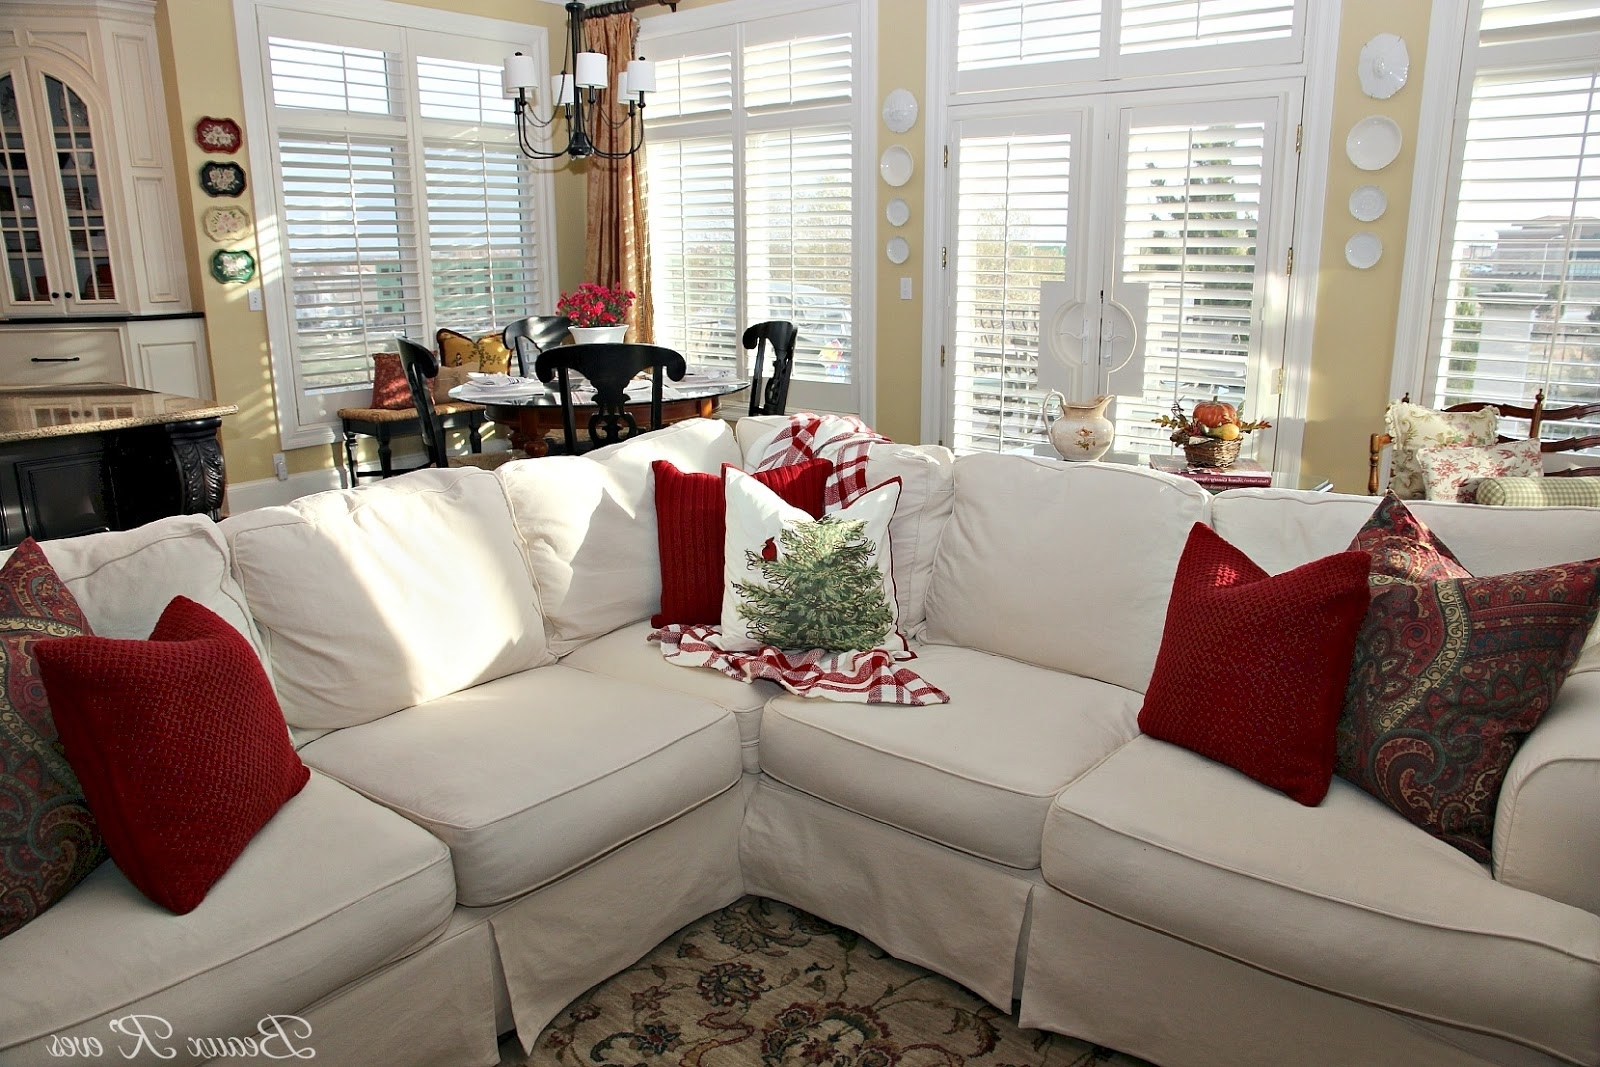 Popular Jcpenney Sectional Sofas In Beaux R'eves: Pottery Barn Knock Off Jcpenney Slipcovered (View 6 of 20)